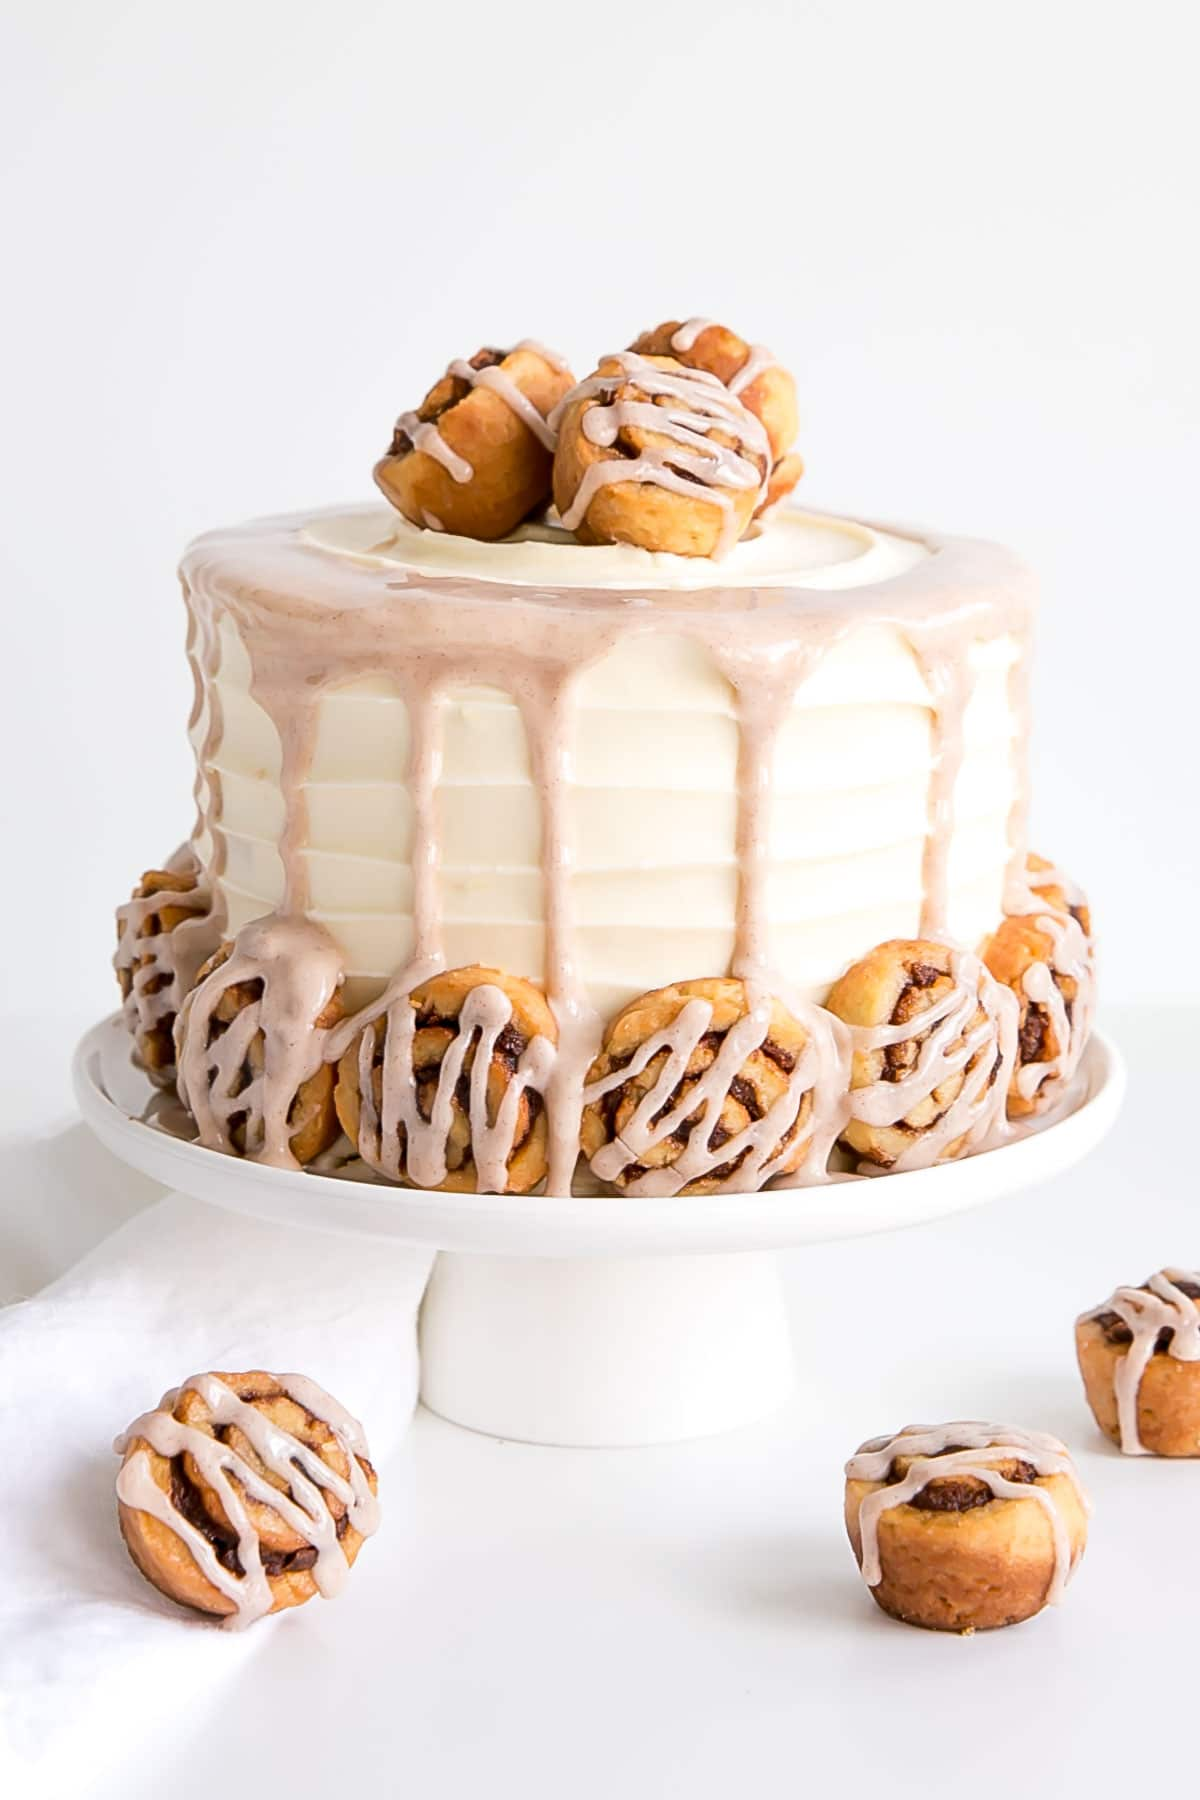 Cinnamon Roll Cake with mini cinnamon rolls and a cinnamon glaze.